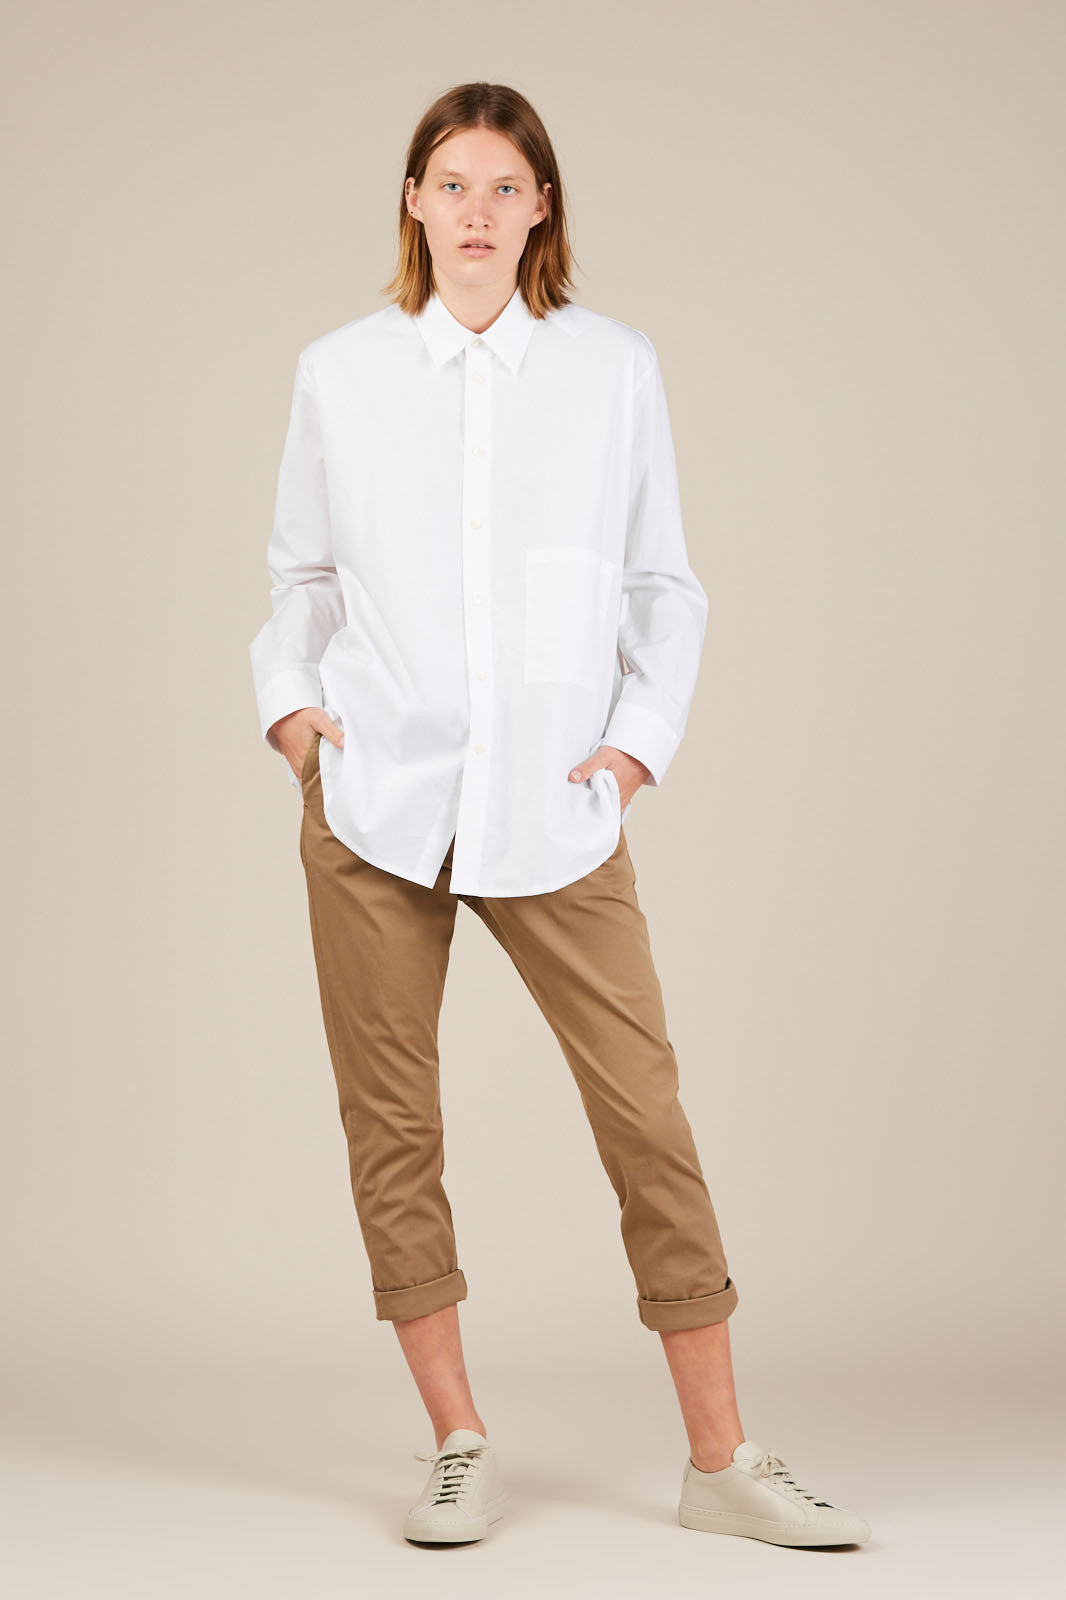 Elma Shirt - White - Hope